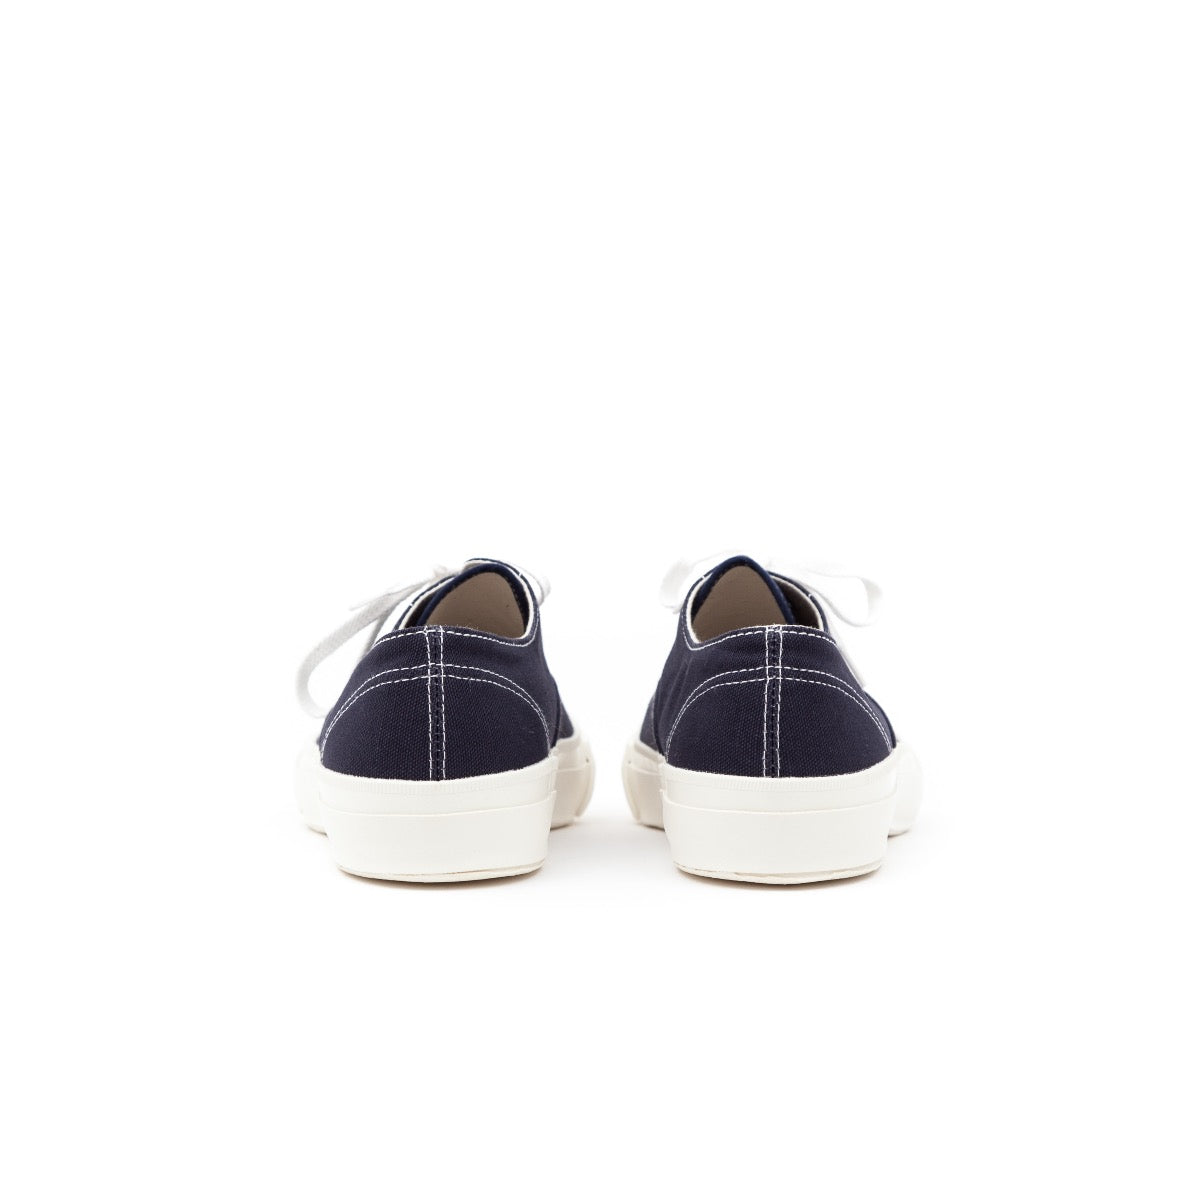 U.S.N. Cotton Canvas Deck Shoe